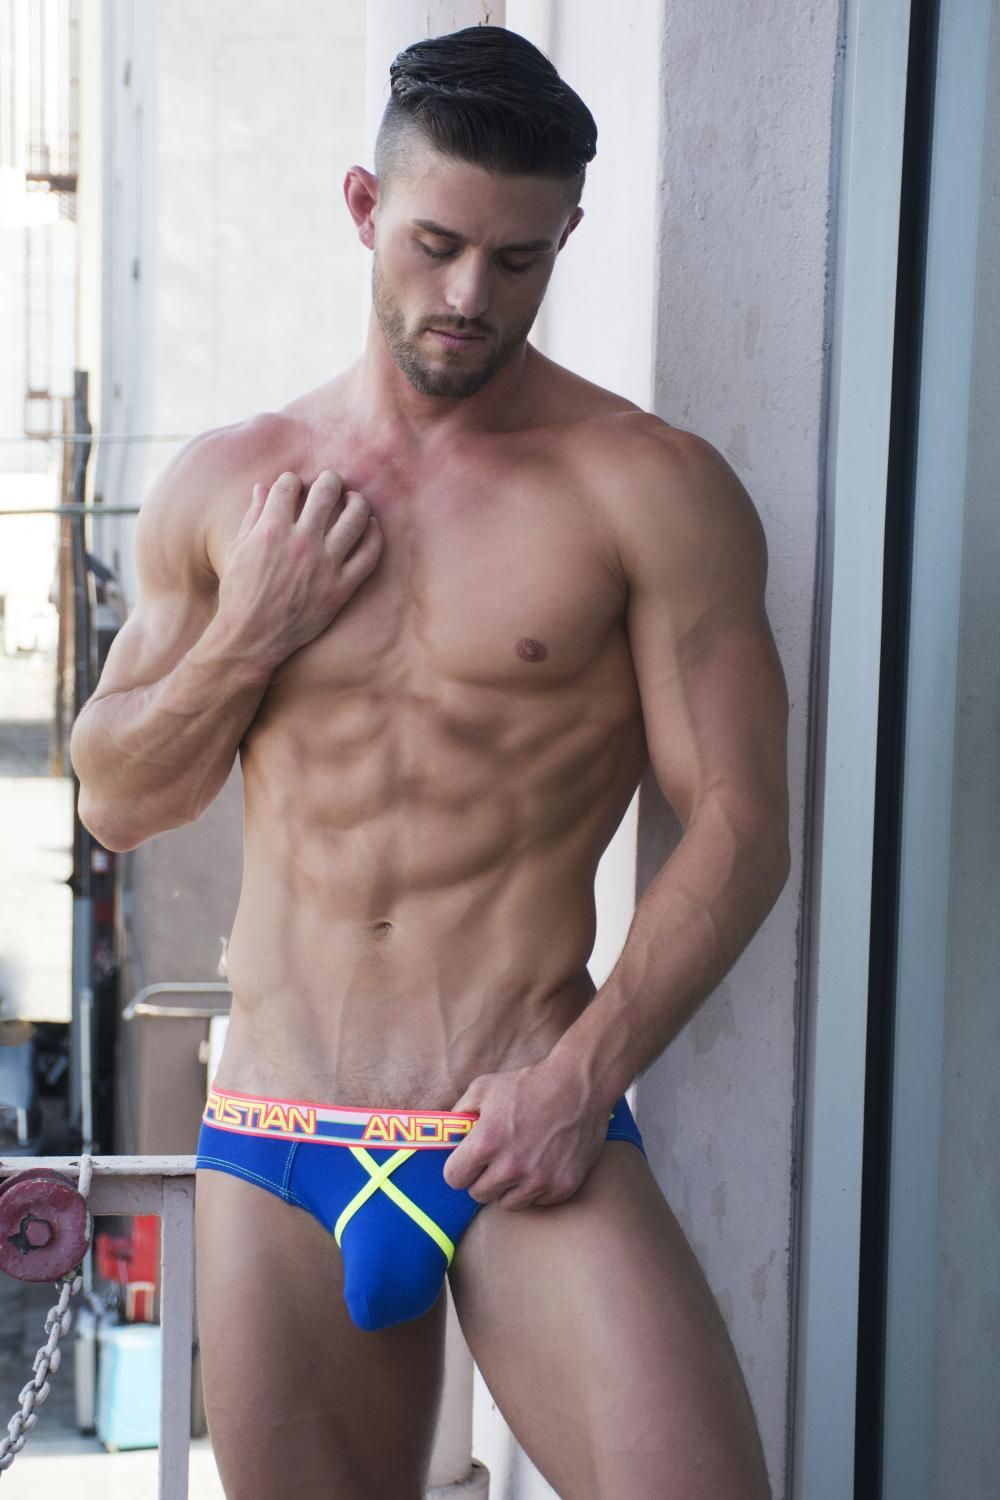 345a2df7c5 underwearnewsbriefs: Andrew Christian 9865 Almost Naked Dare Brief, Royal  Blue, Model, Ryan